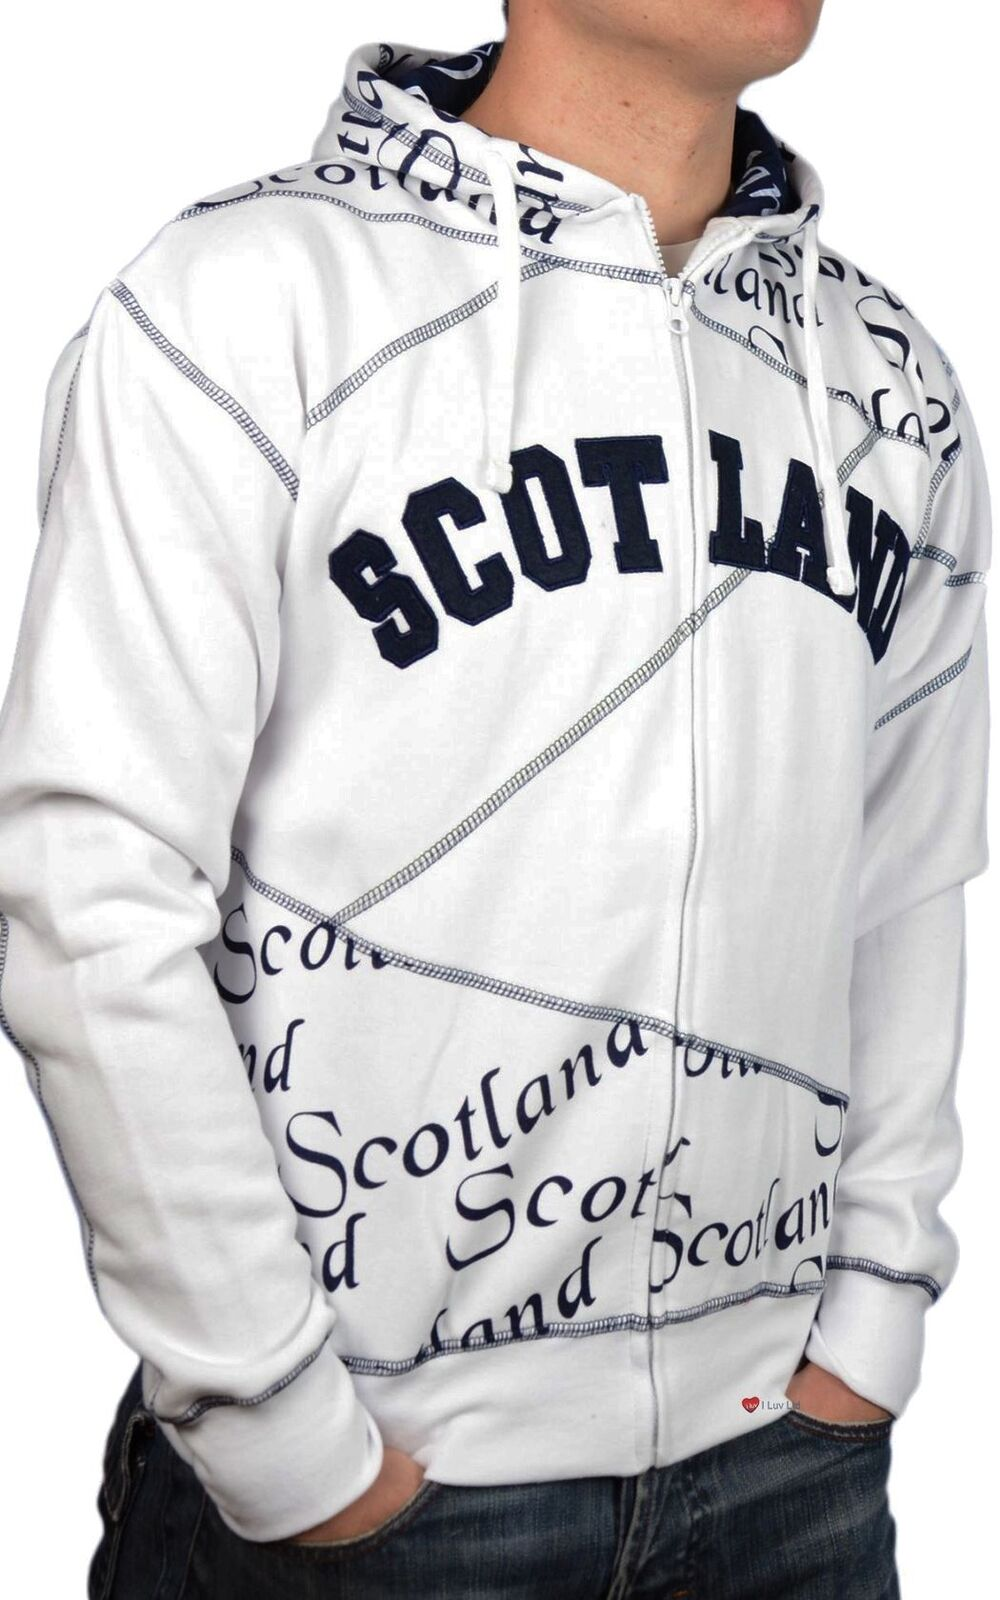 Zip Top Scotland Scroll Navy Lettering Fashion Hoodie White 2X-Large